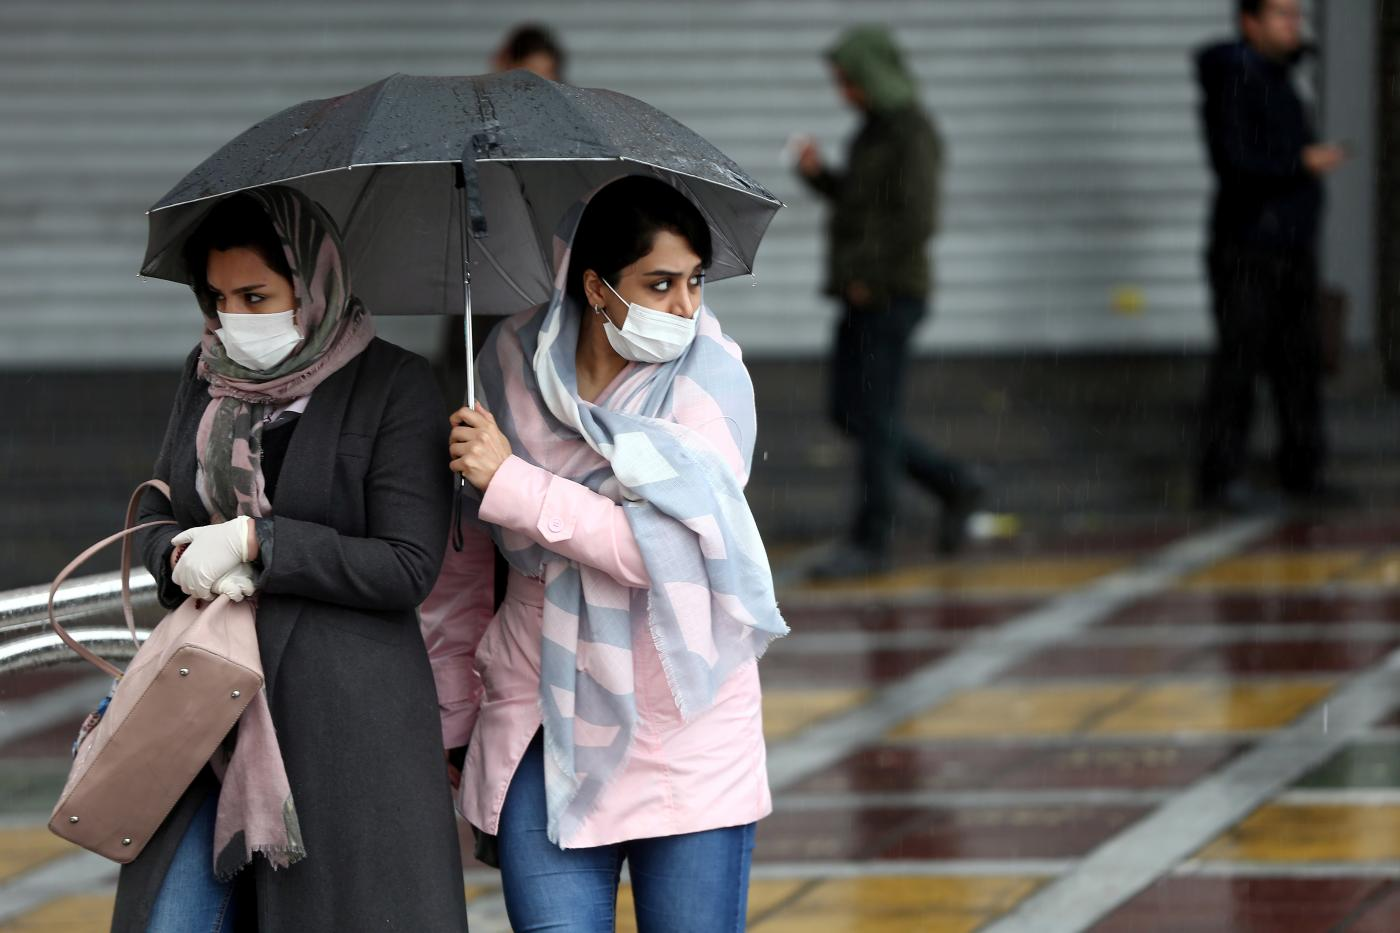 iranian women wear protective masks to prevent contracting coronavirus as they walk in the street in tehran reuters 25 feb 2020